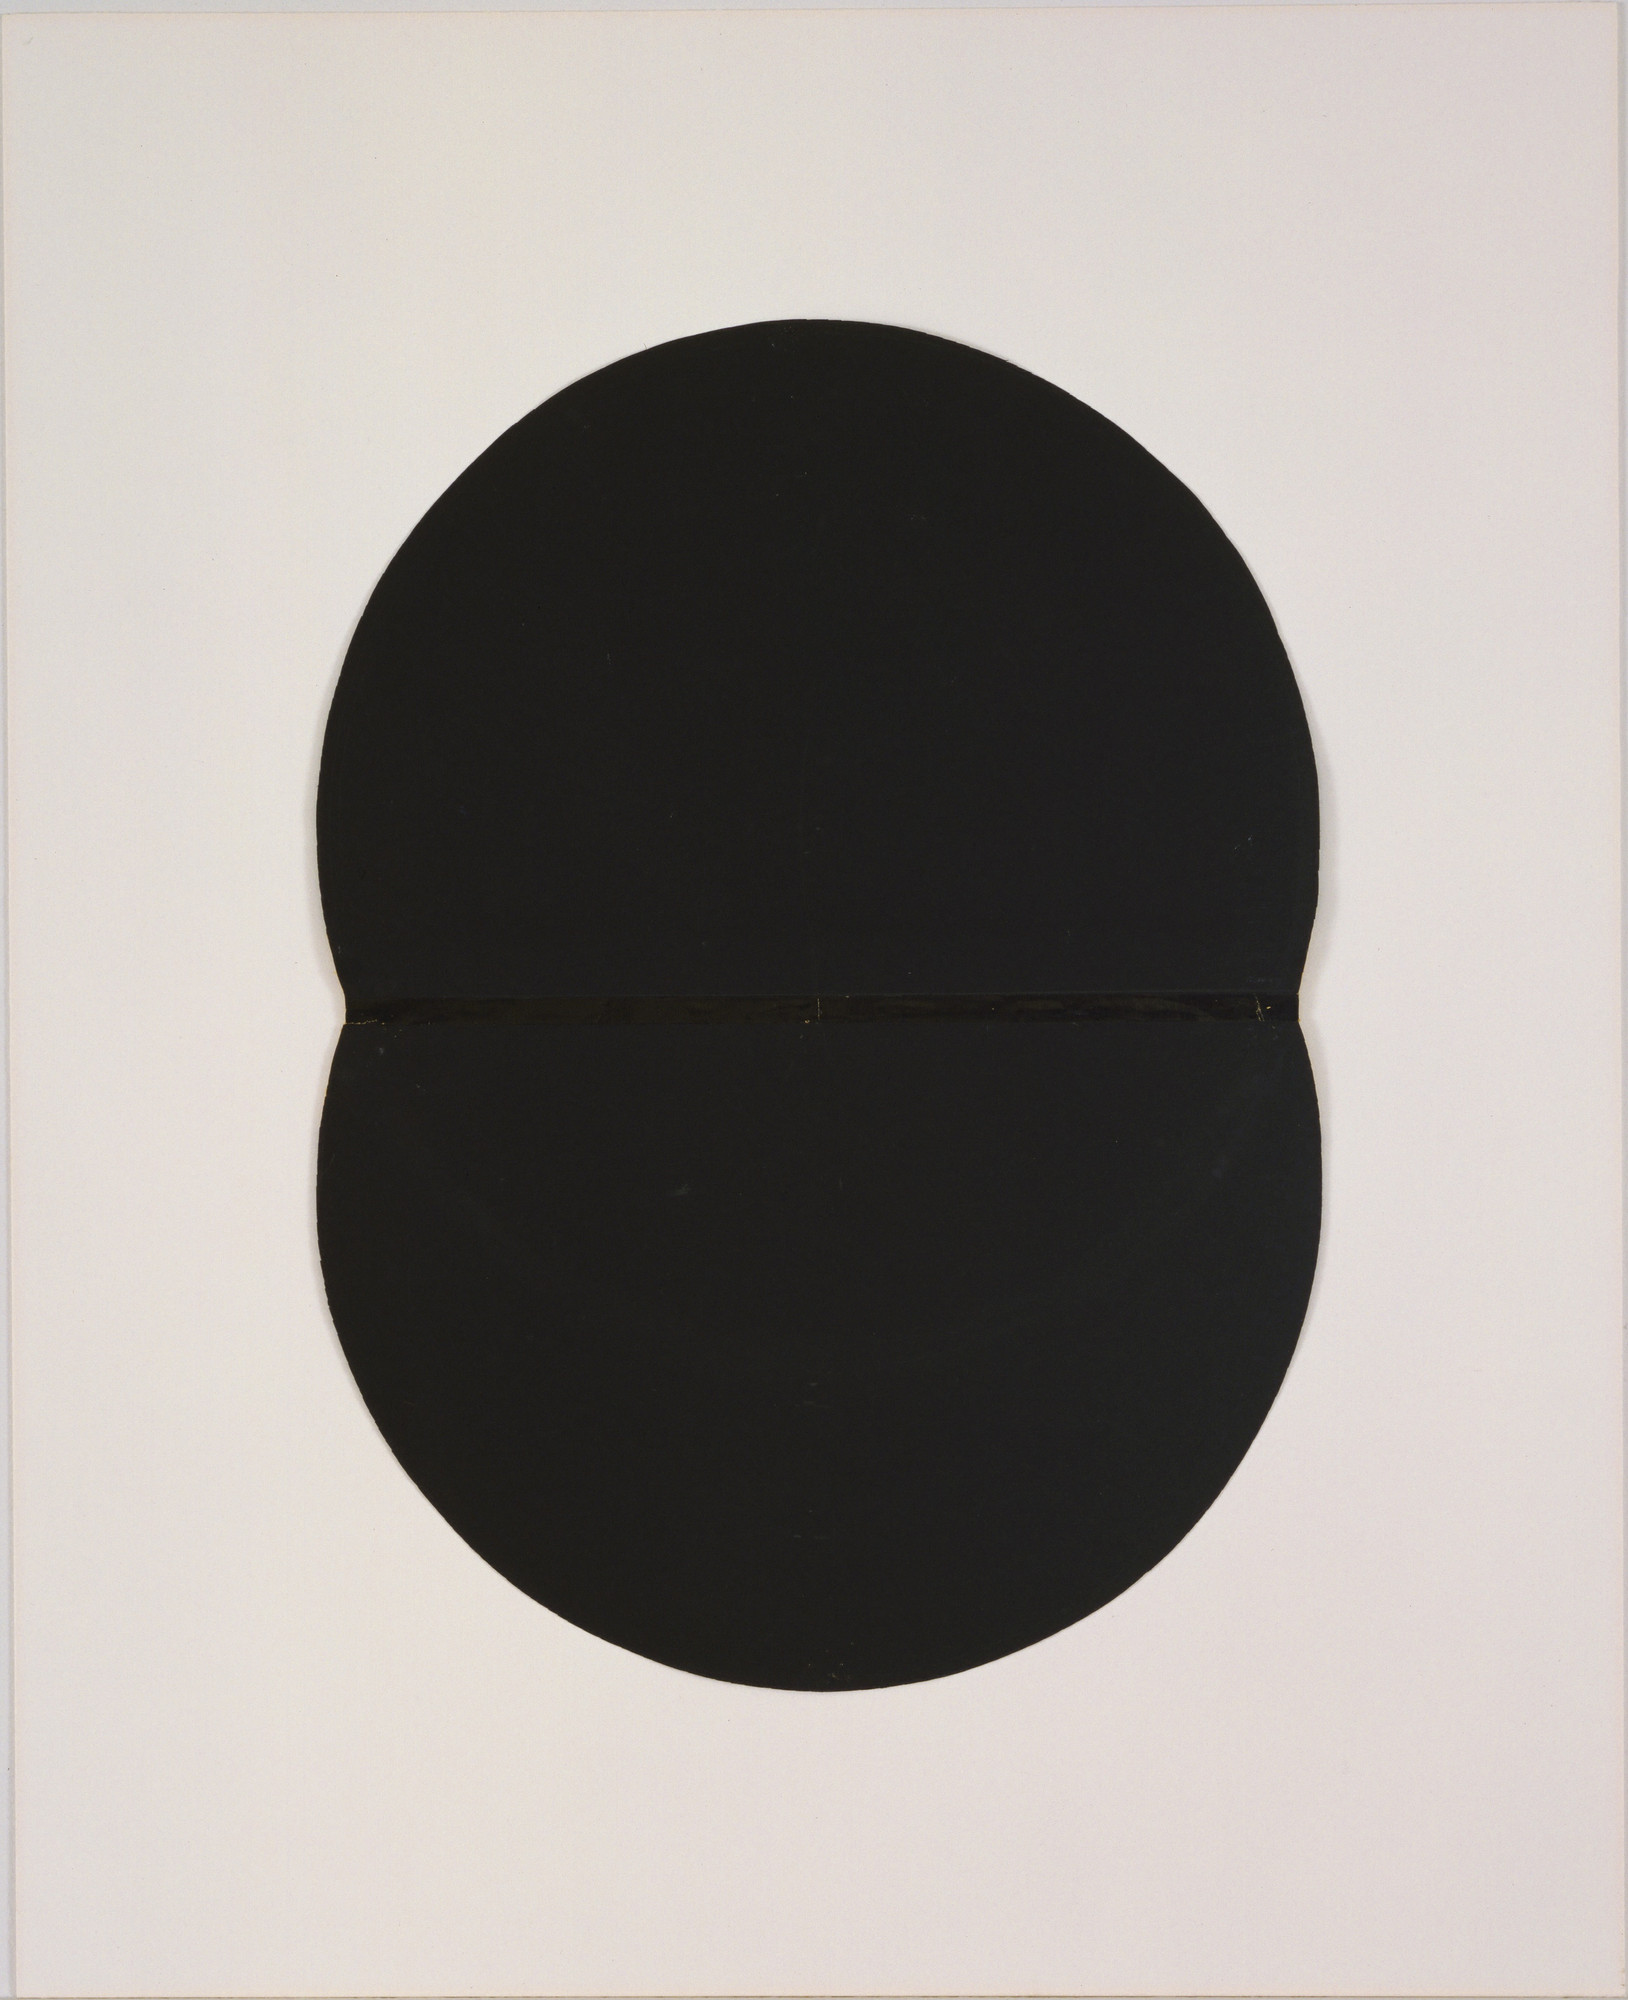 Ellsworth Kelly. Study for White Plaque: Bridge Arch and Reflection. 1951